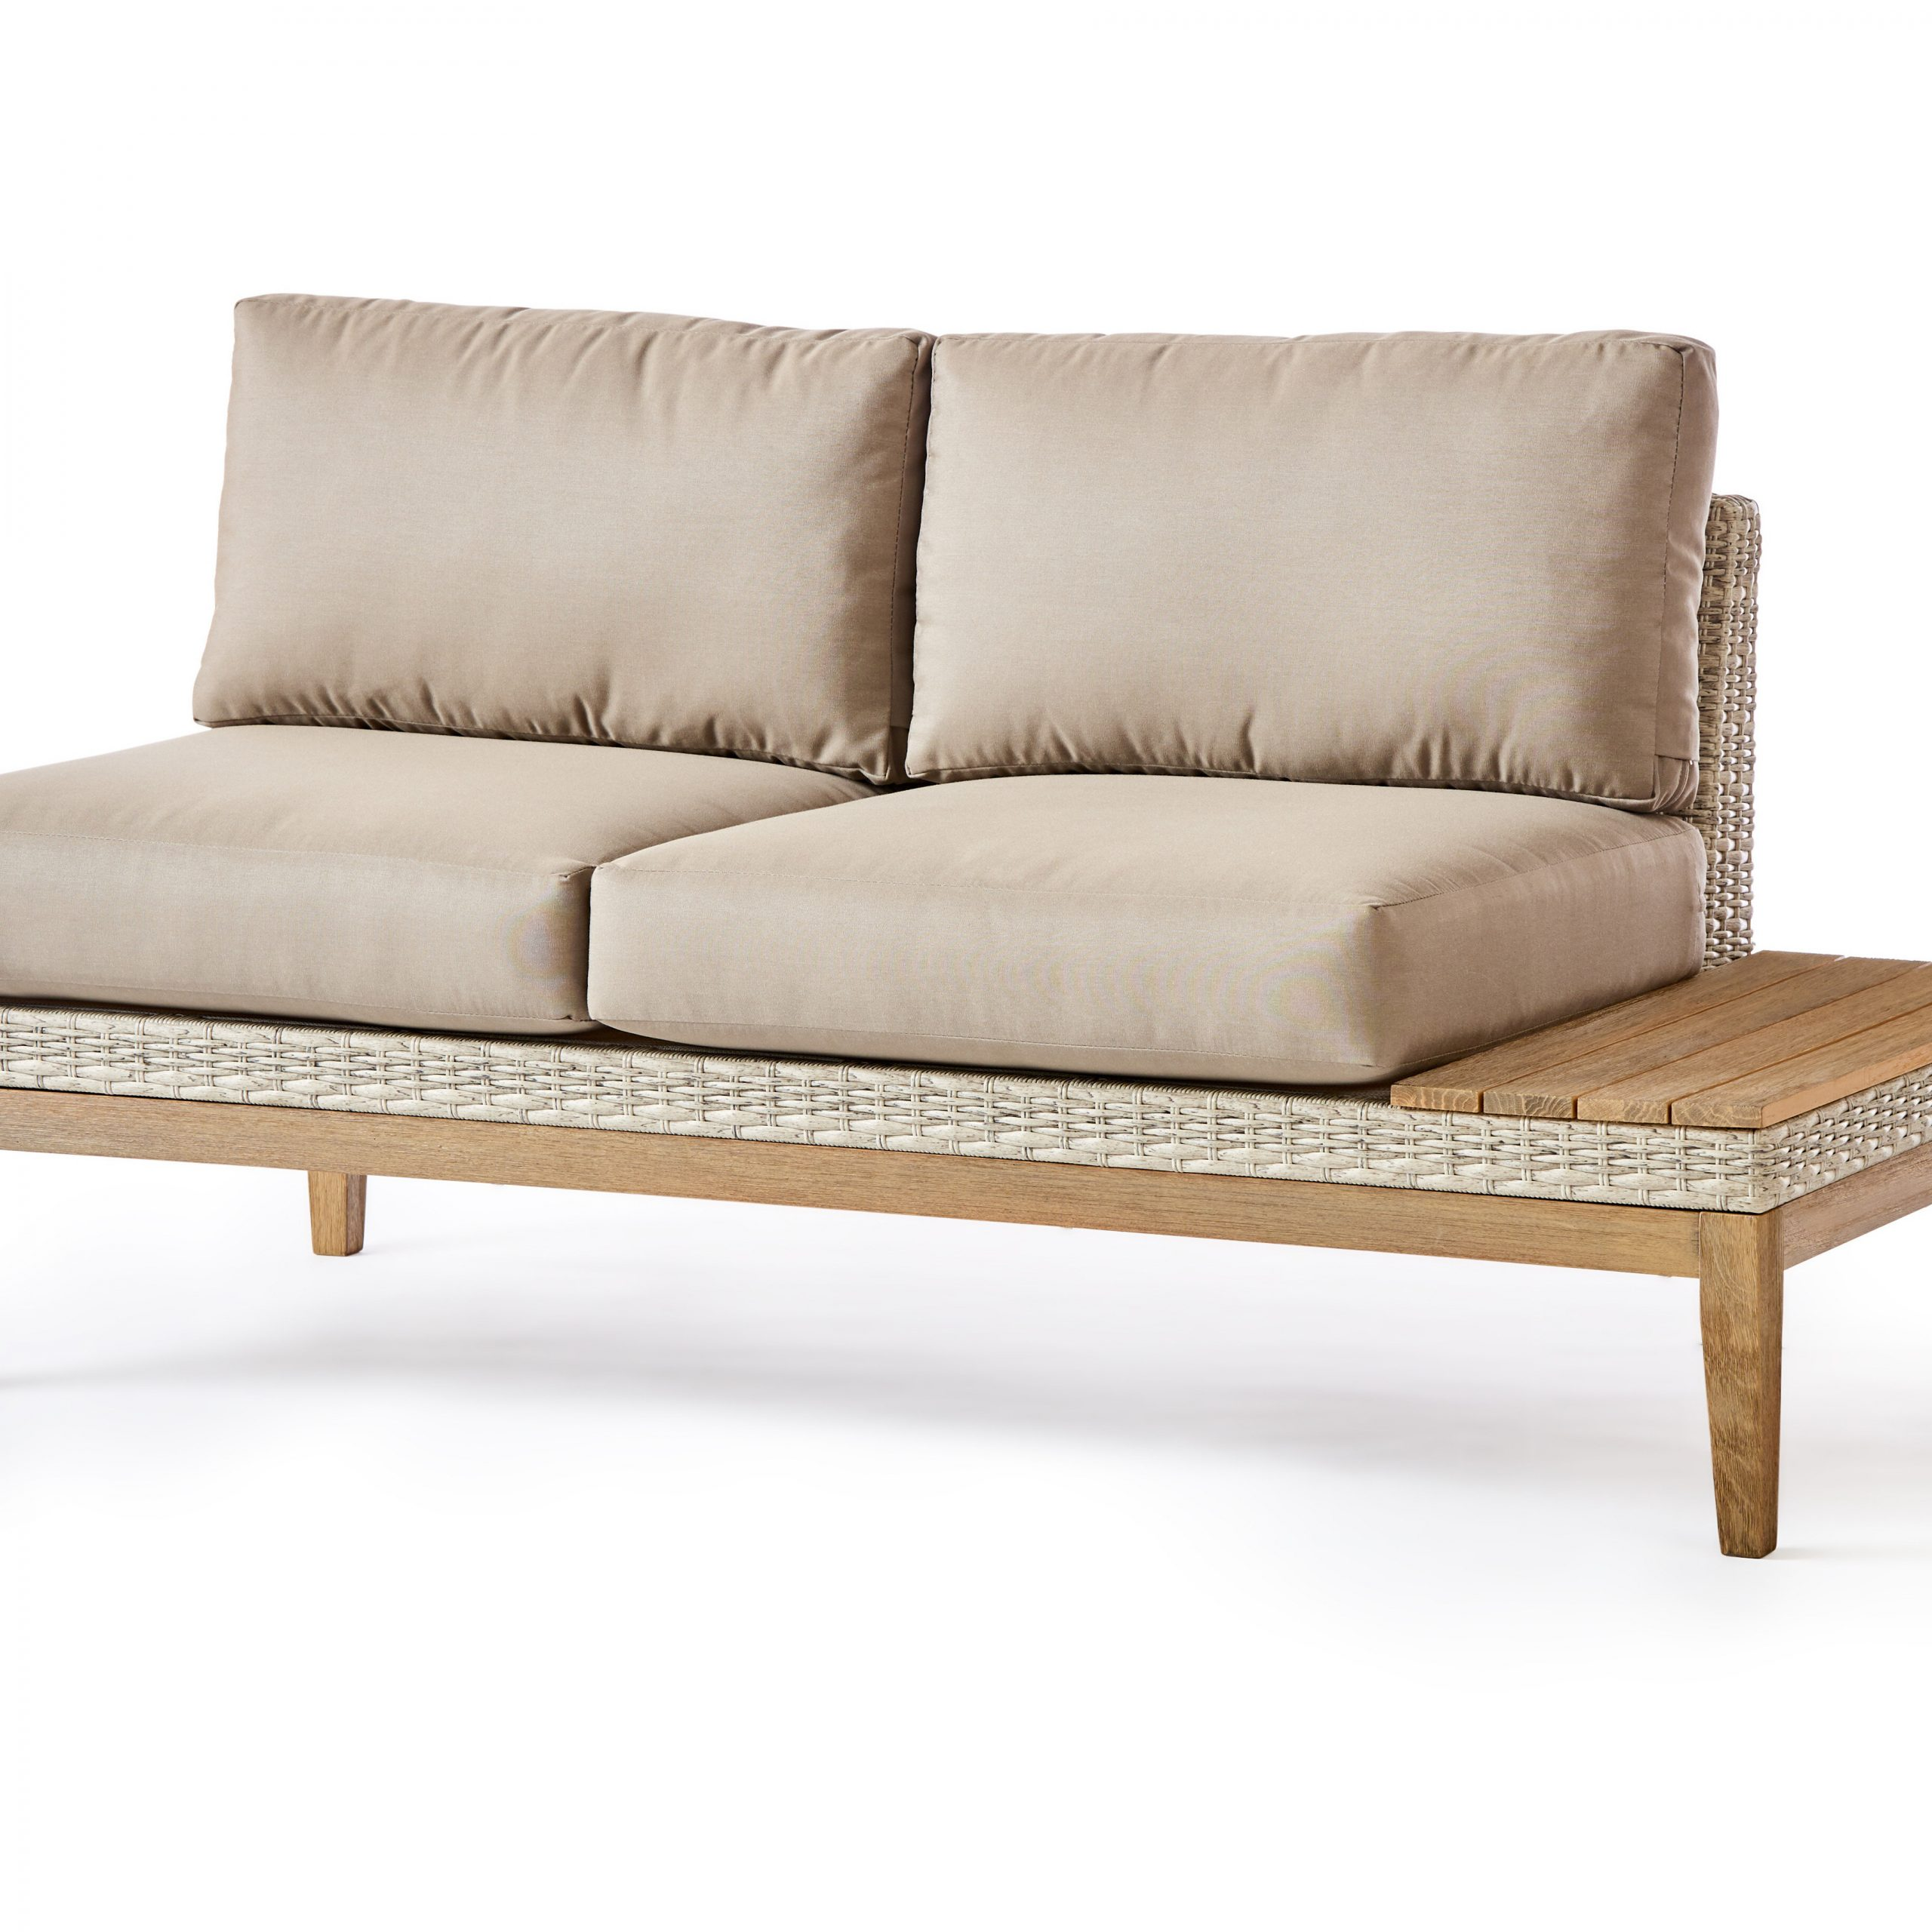 Well Known Wakeland Wicker Loveseats With Cushions Inside River Darnell Patio Loveseat With Cushions (View 20 of 25)